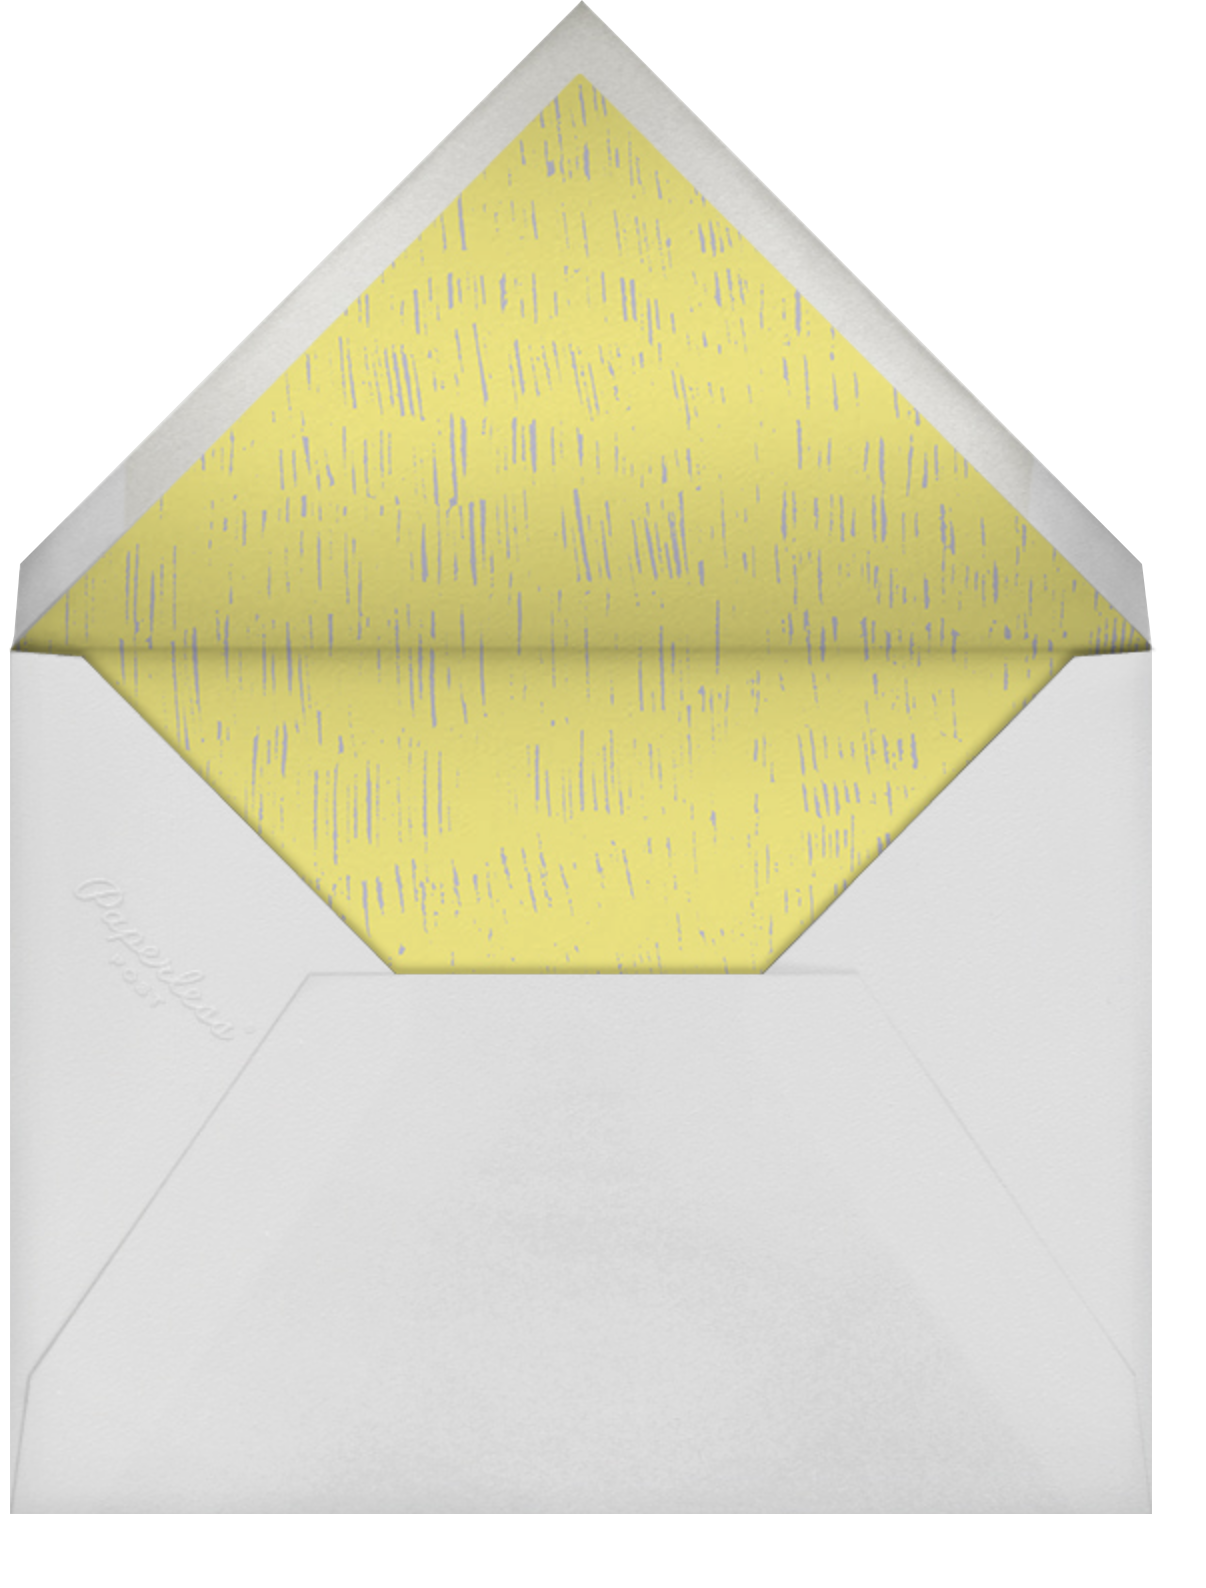 Pour Me A Cup - (Chartreuse And Gray) - Paperless Post - Bridal shower - envelope back